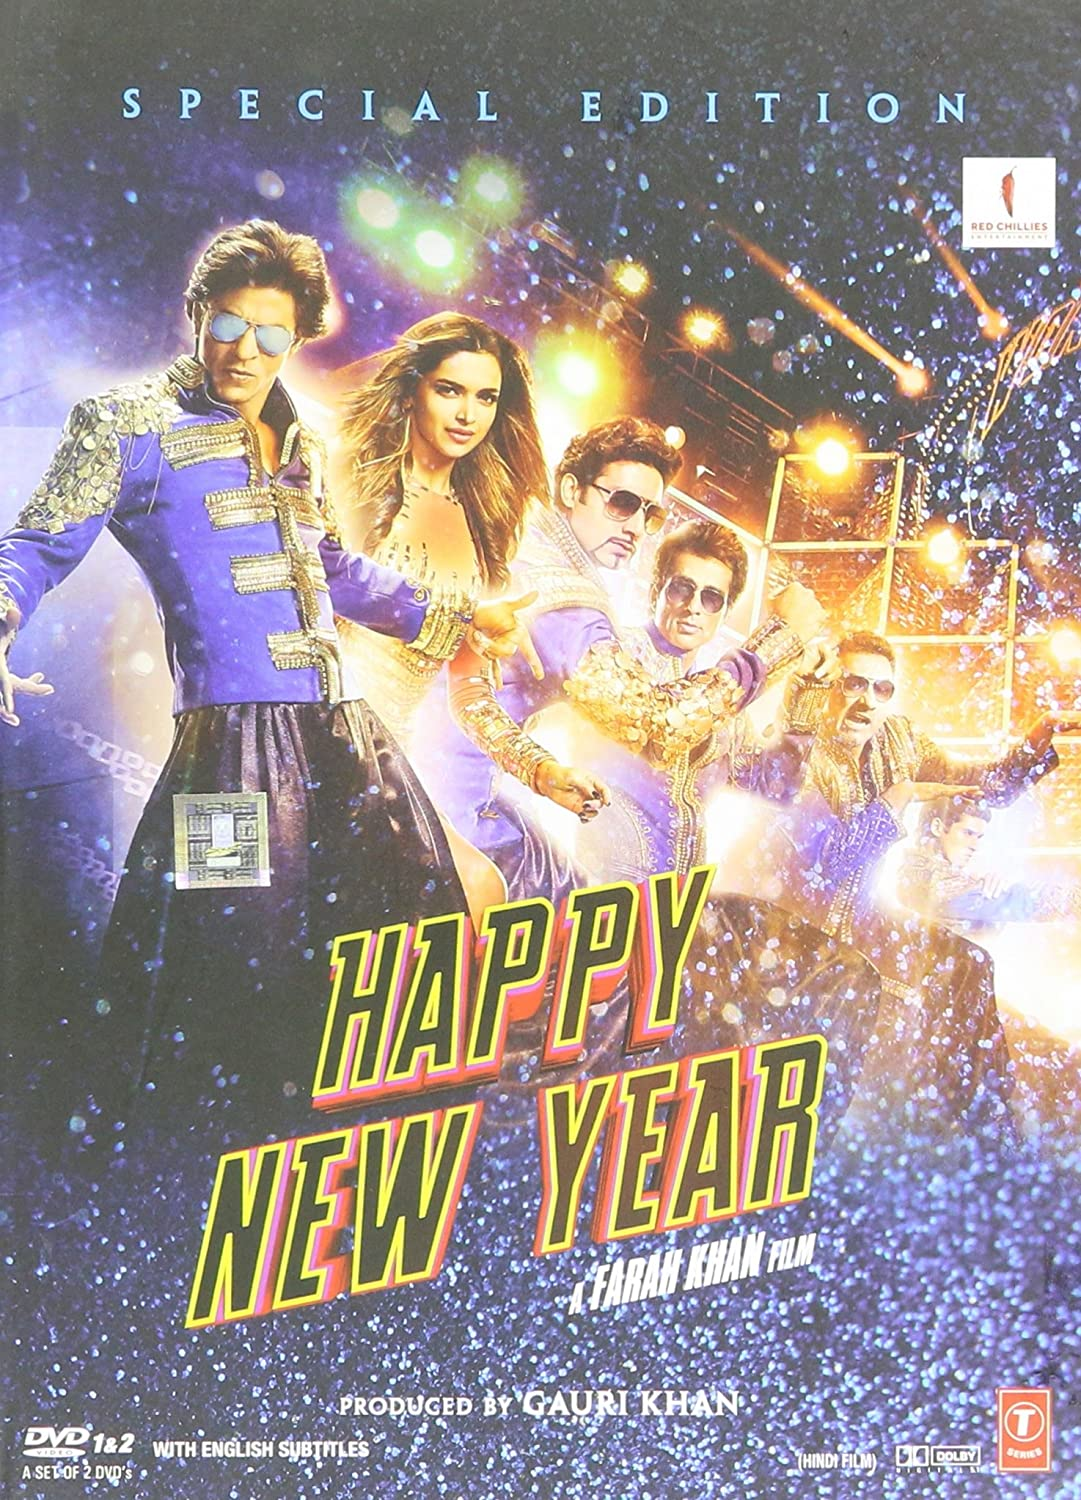 Amazon.com: HAPPY NEW YEAR DVD [BOLLYWOOD] - 2 DISC SPECIAL ...